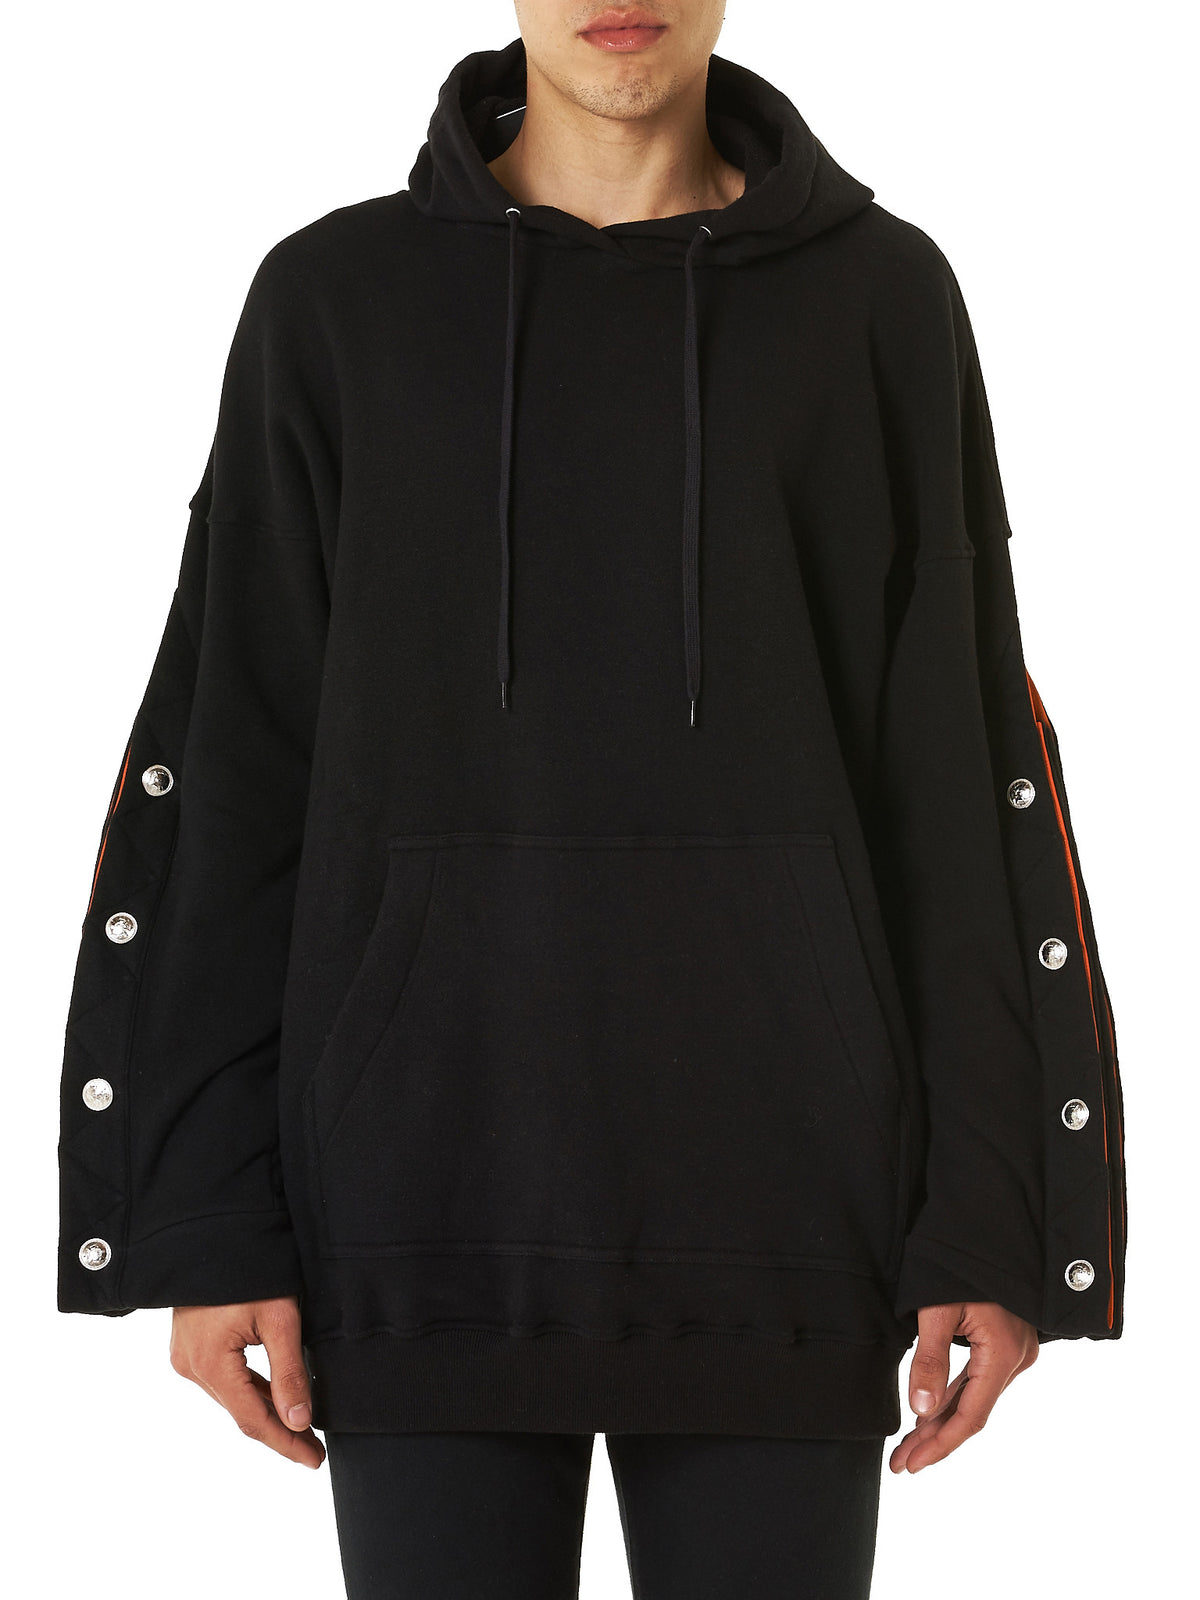 Structured Hooded Sweater (SWEAT7-S12-CC120-BLACK)